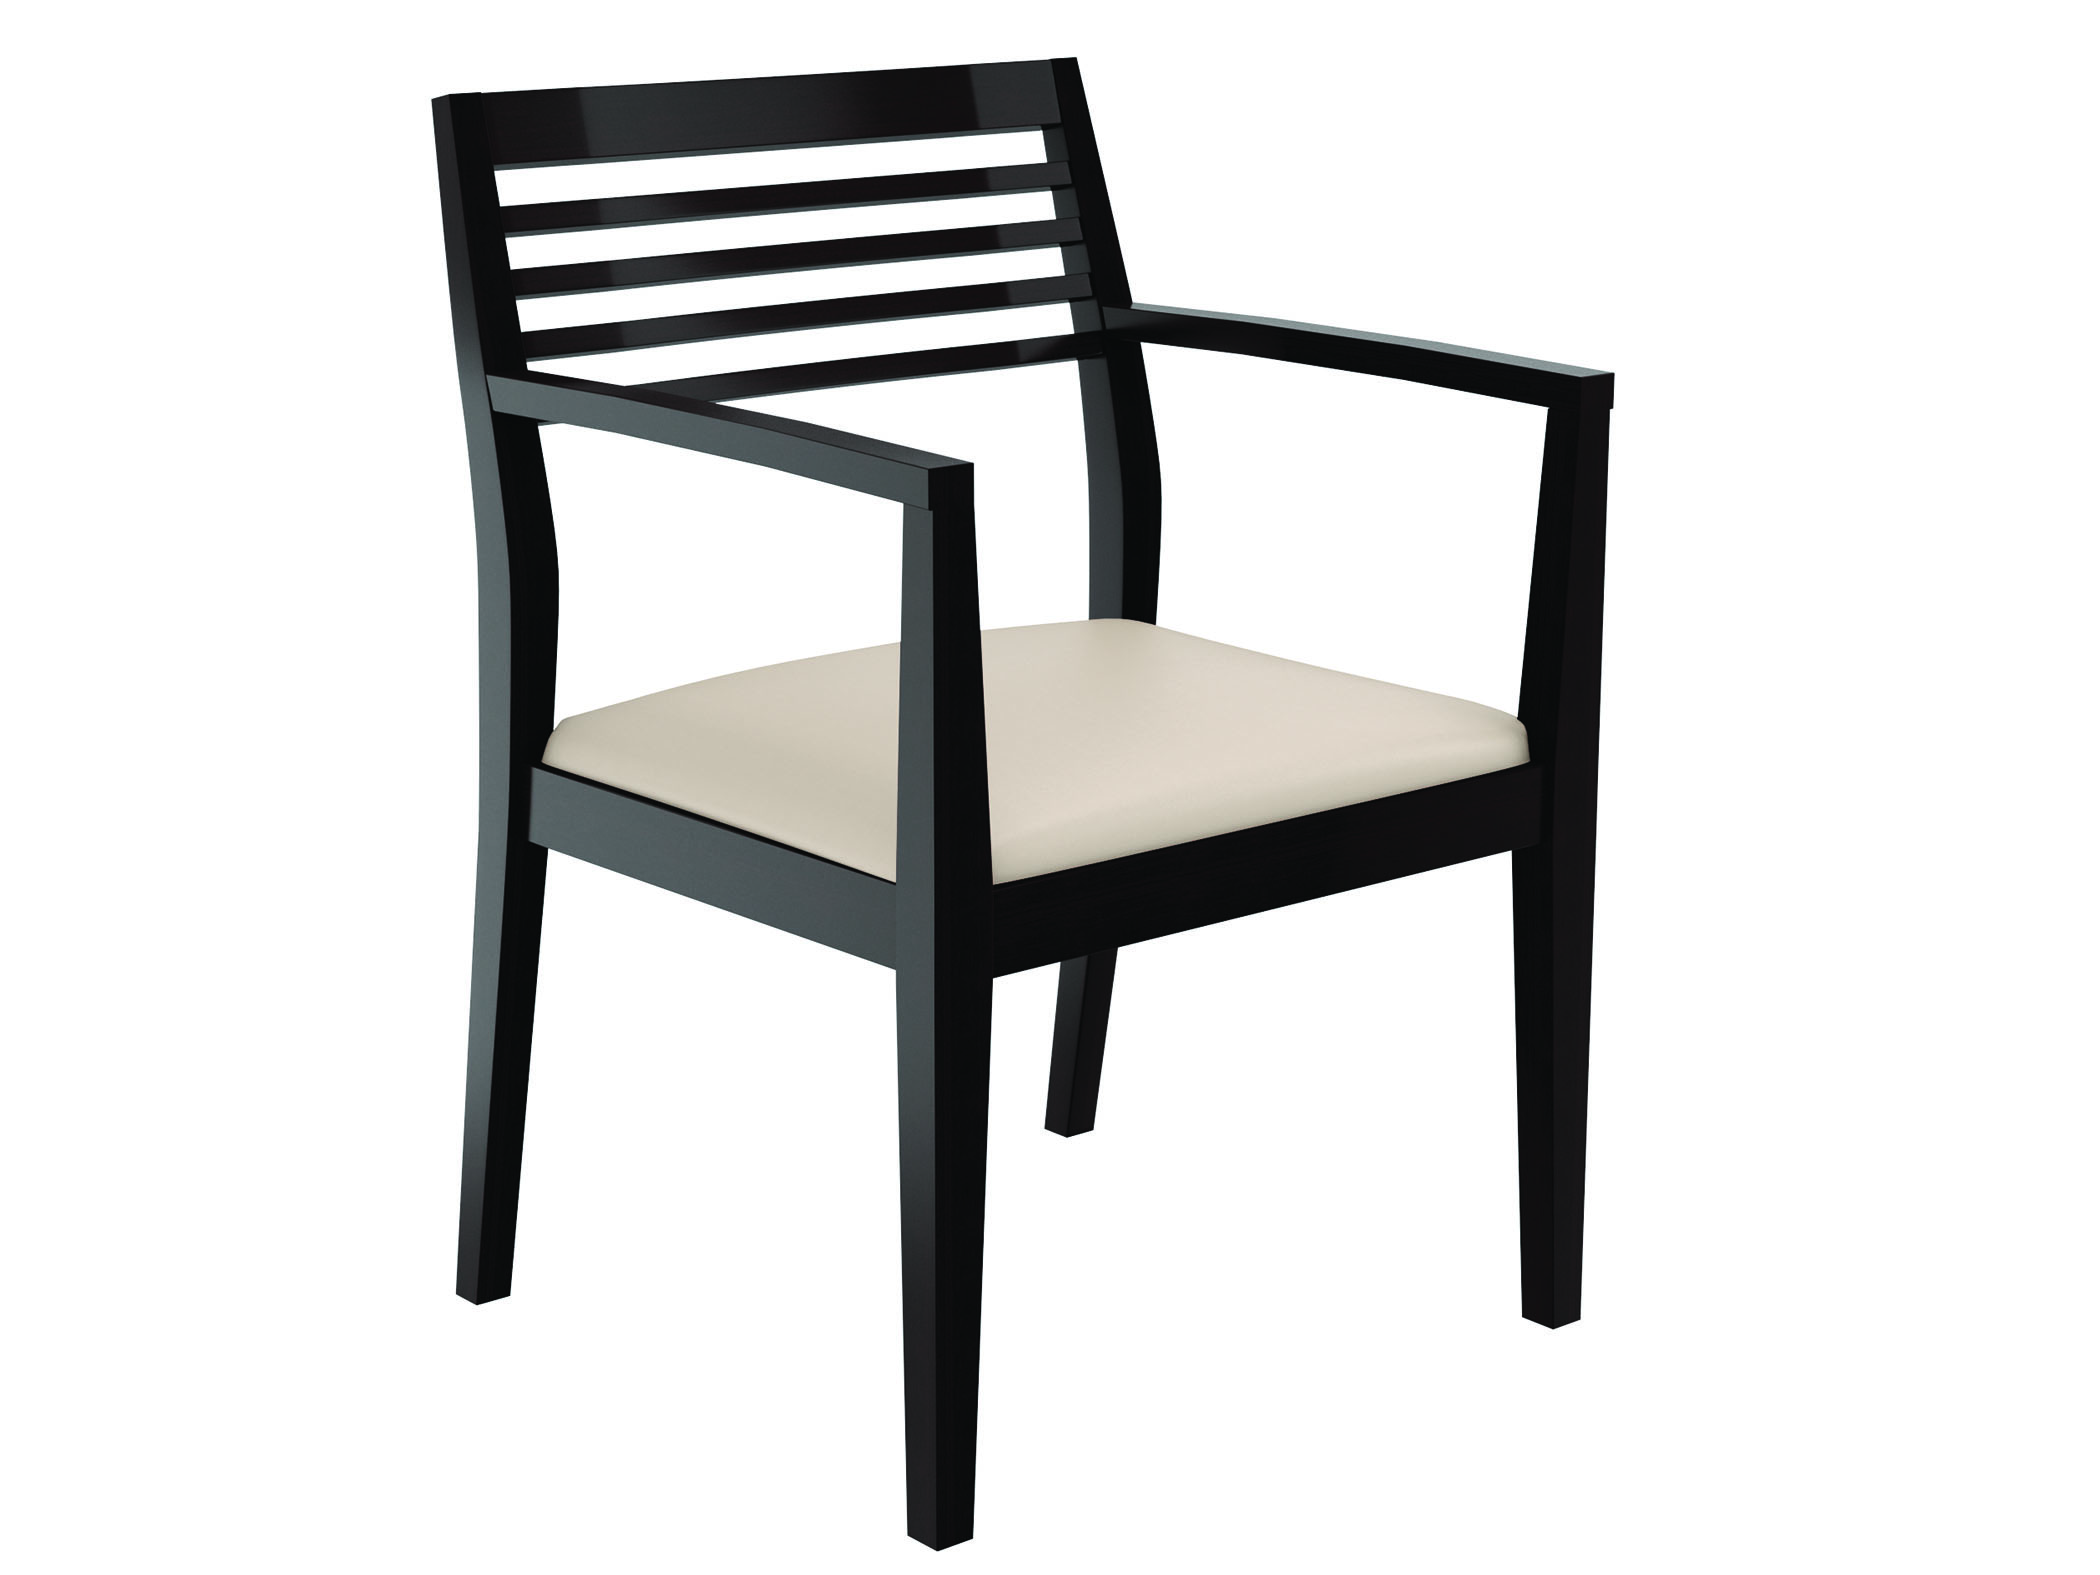 Executive Furniture from Compel - Strata guest chair